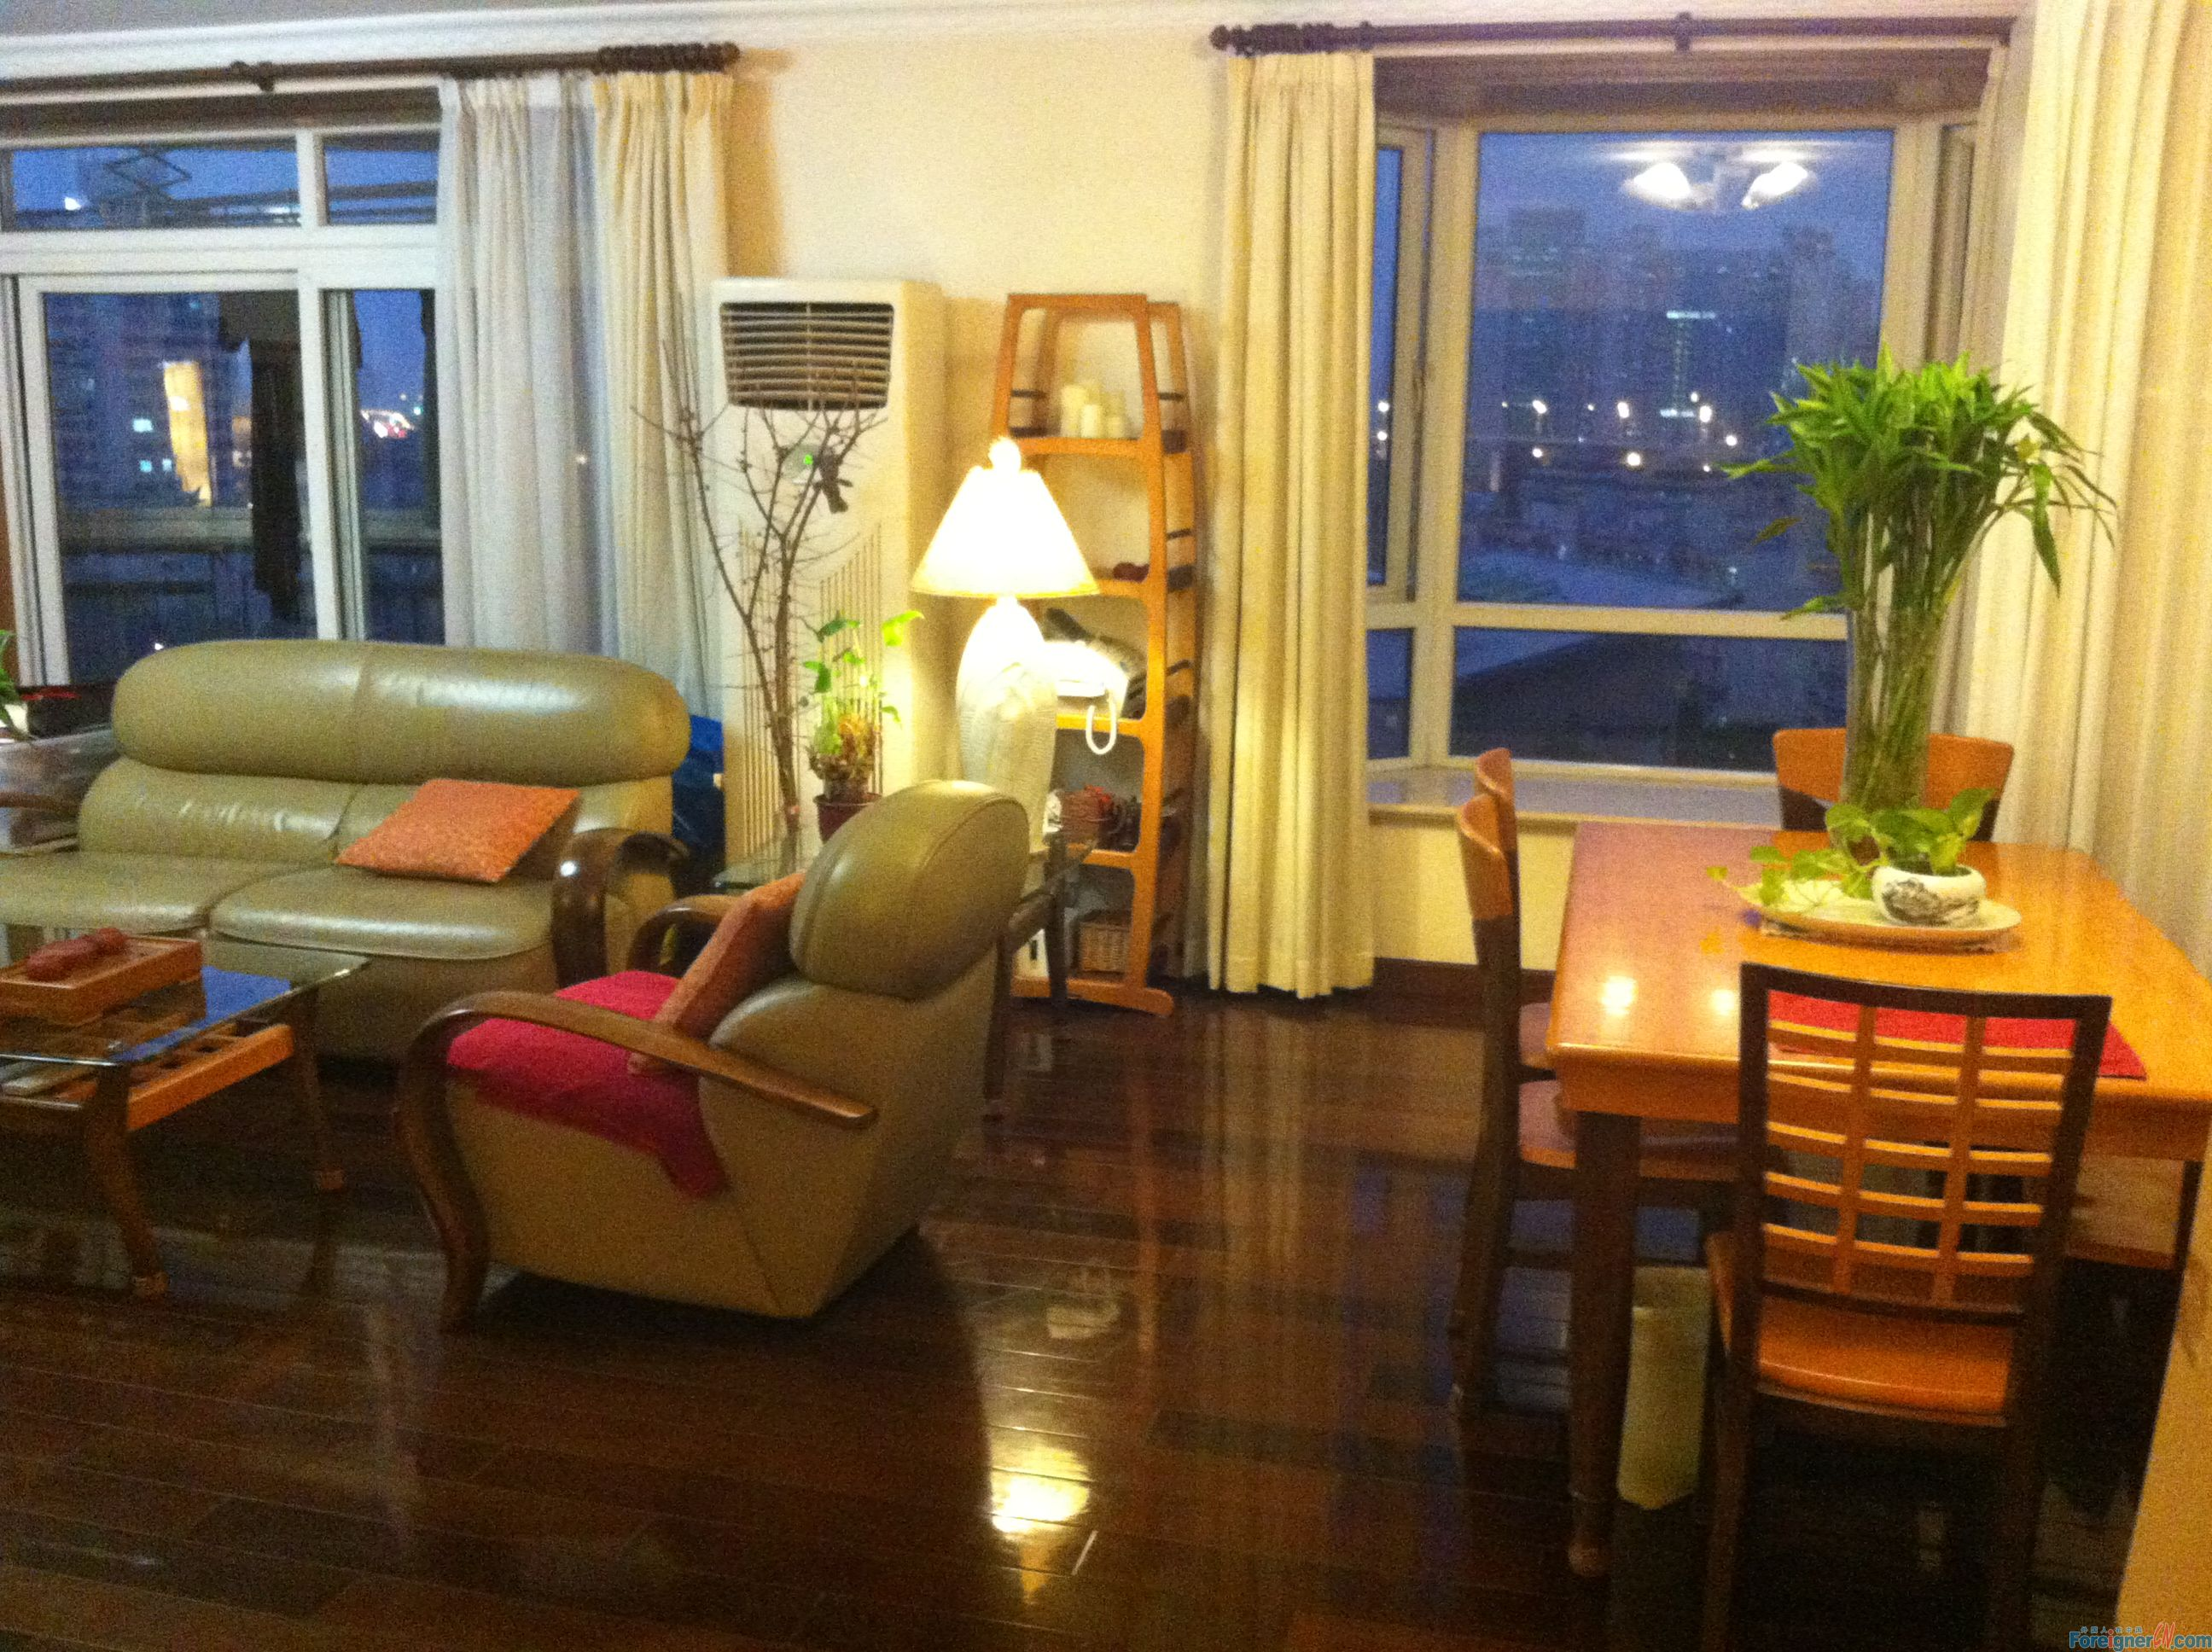 shanghai, modern 2br flat in classic area to share